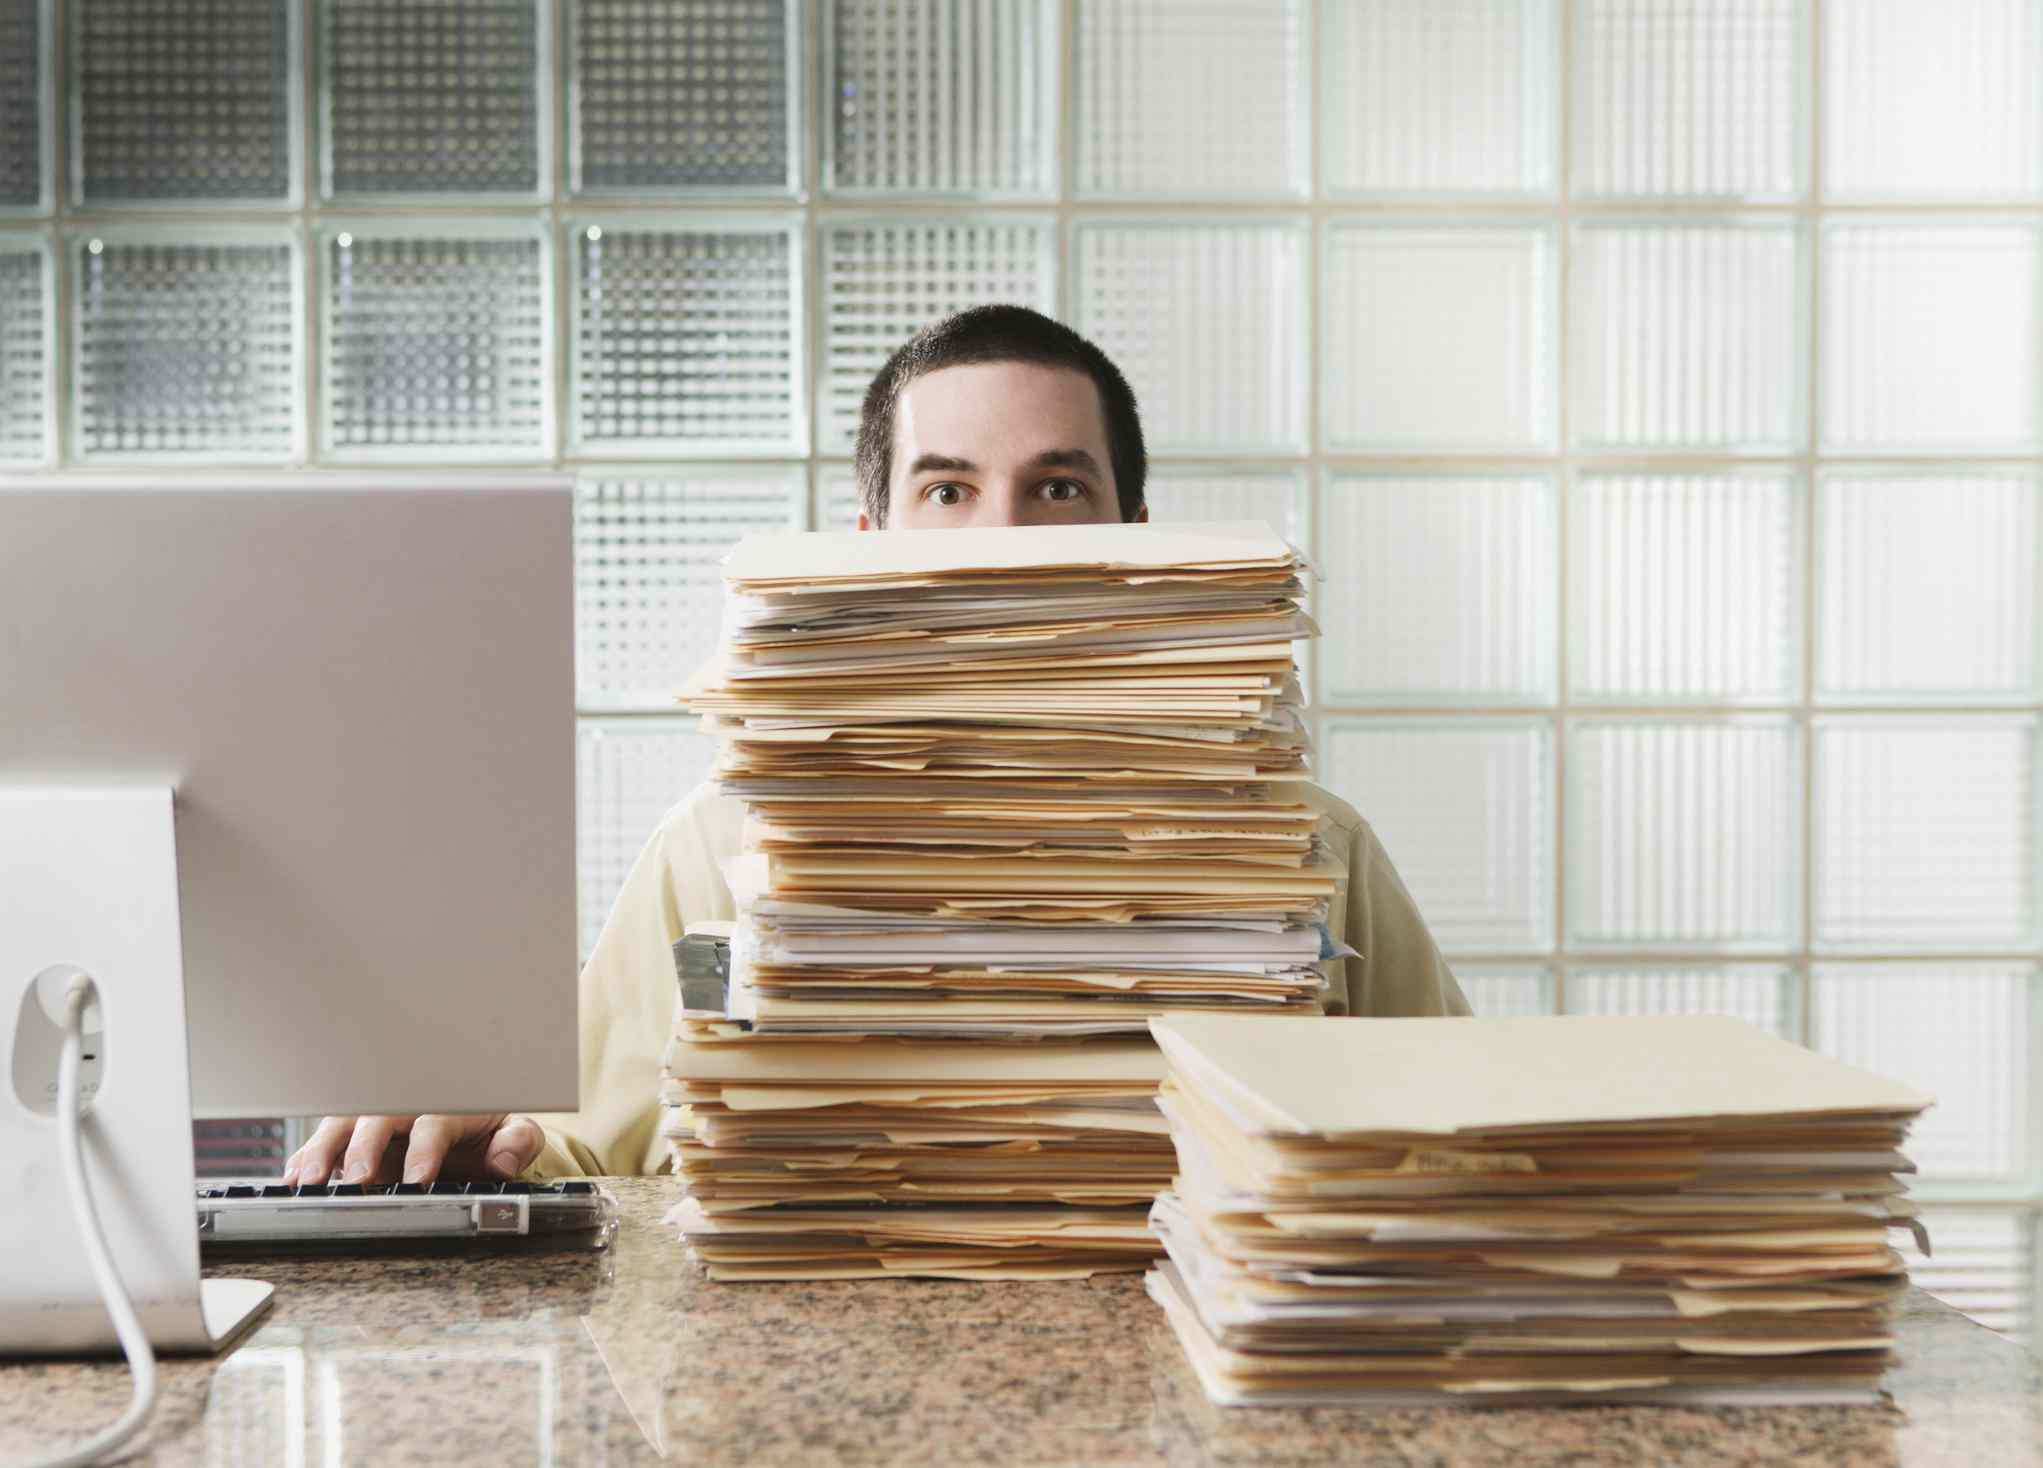 Overworked businessperson with a stack of files and a computer